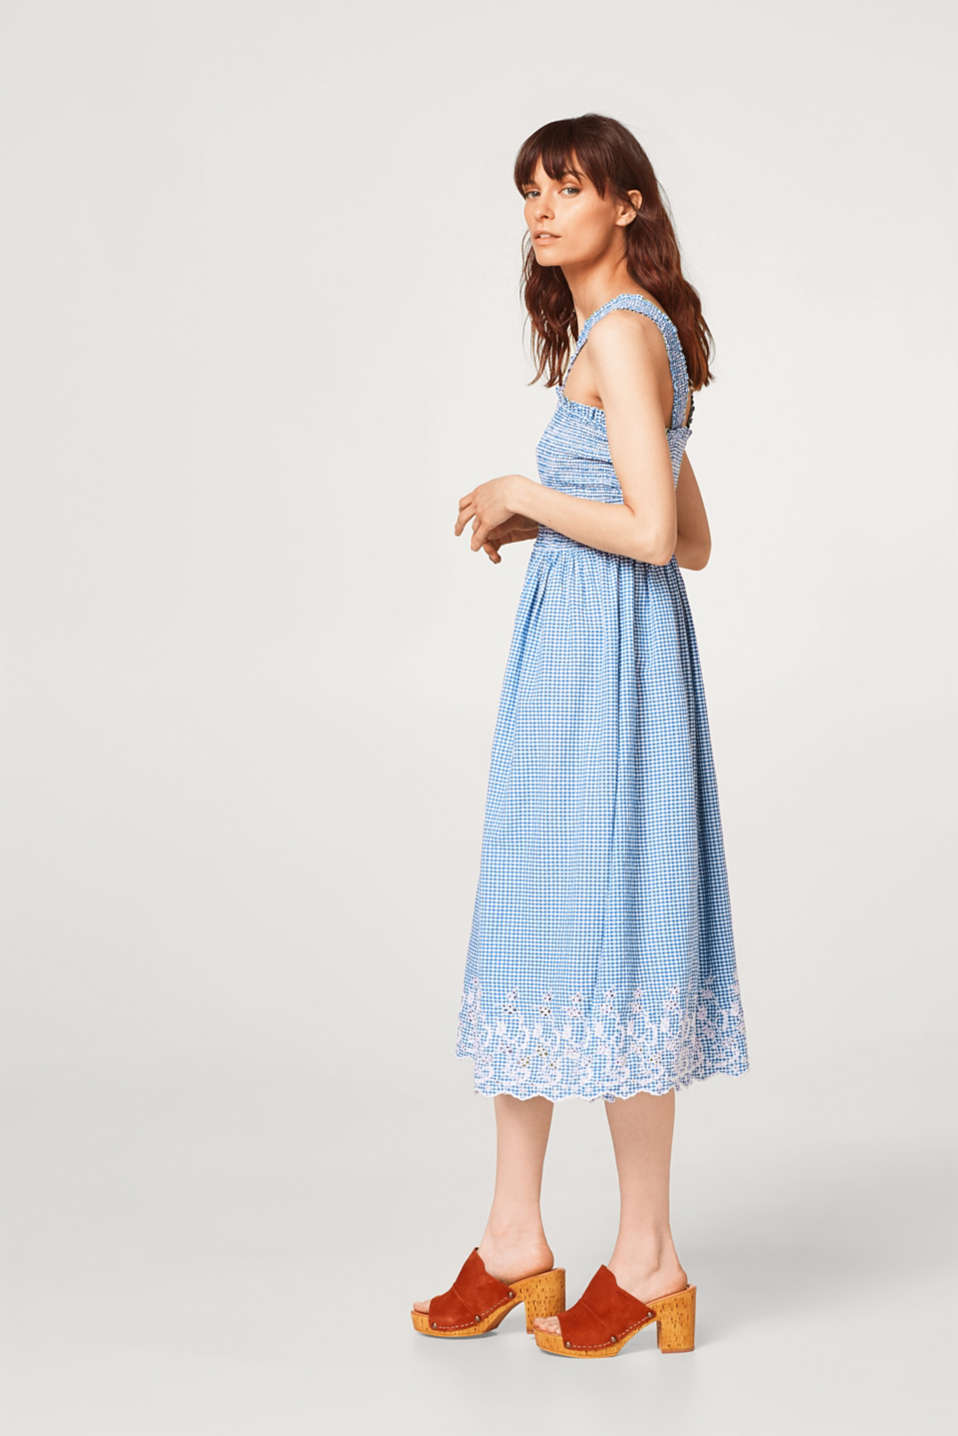 Embroidered gingham check dress composed of organic cotton